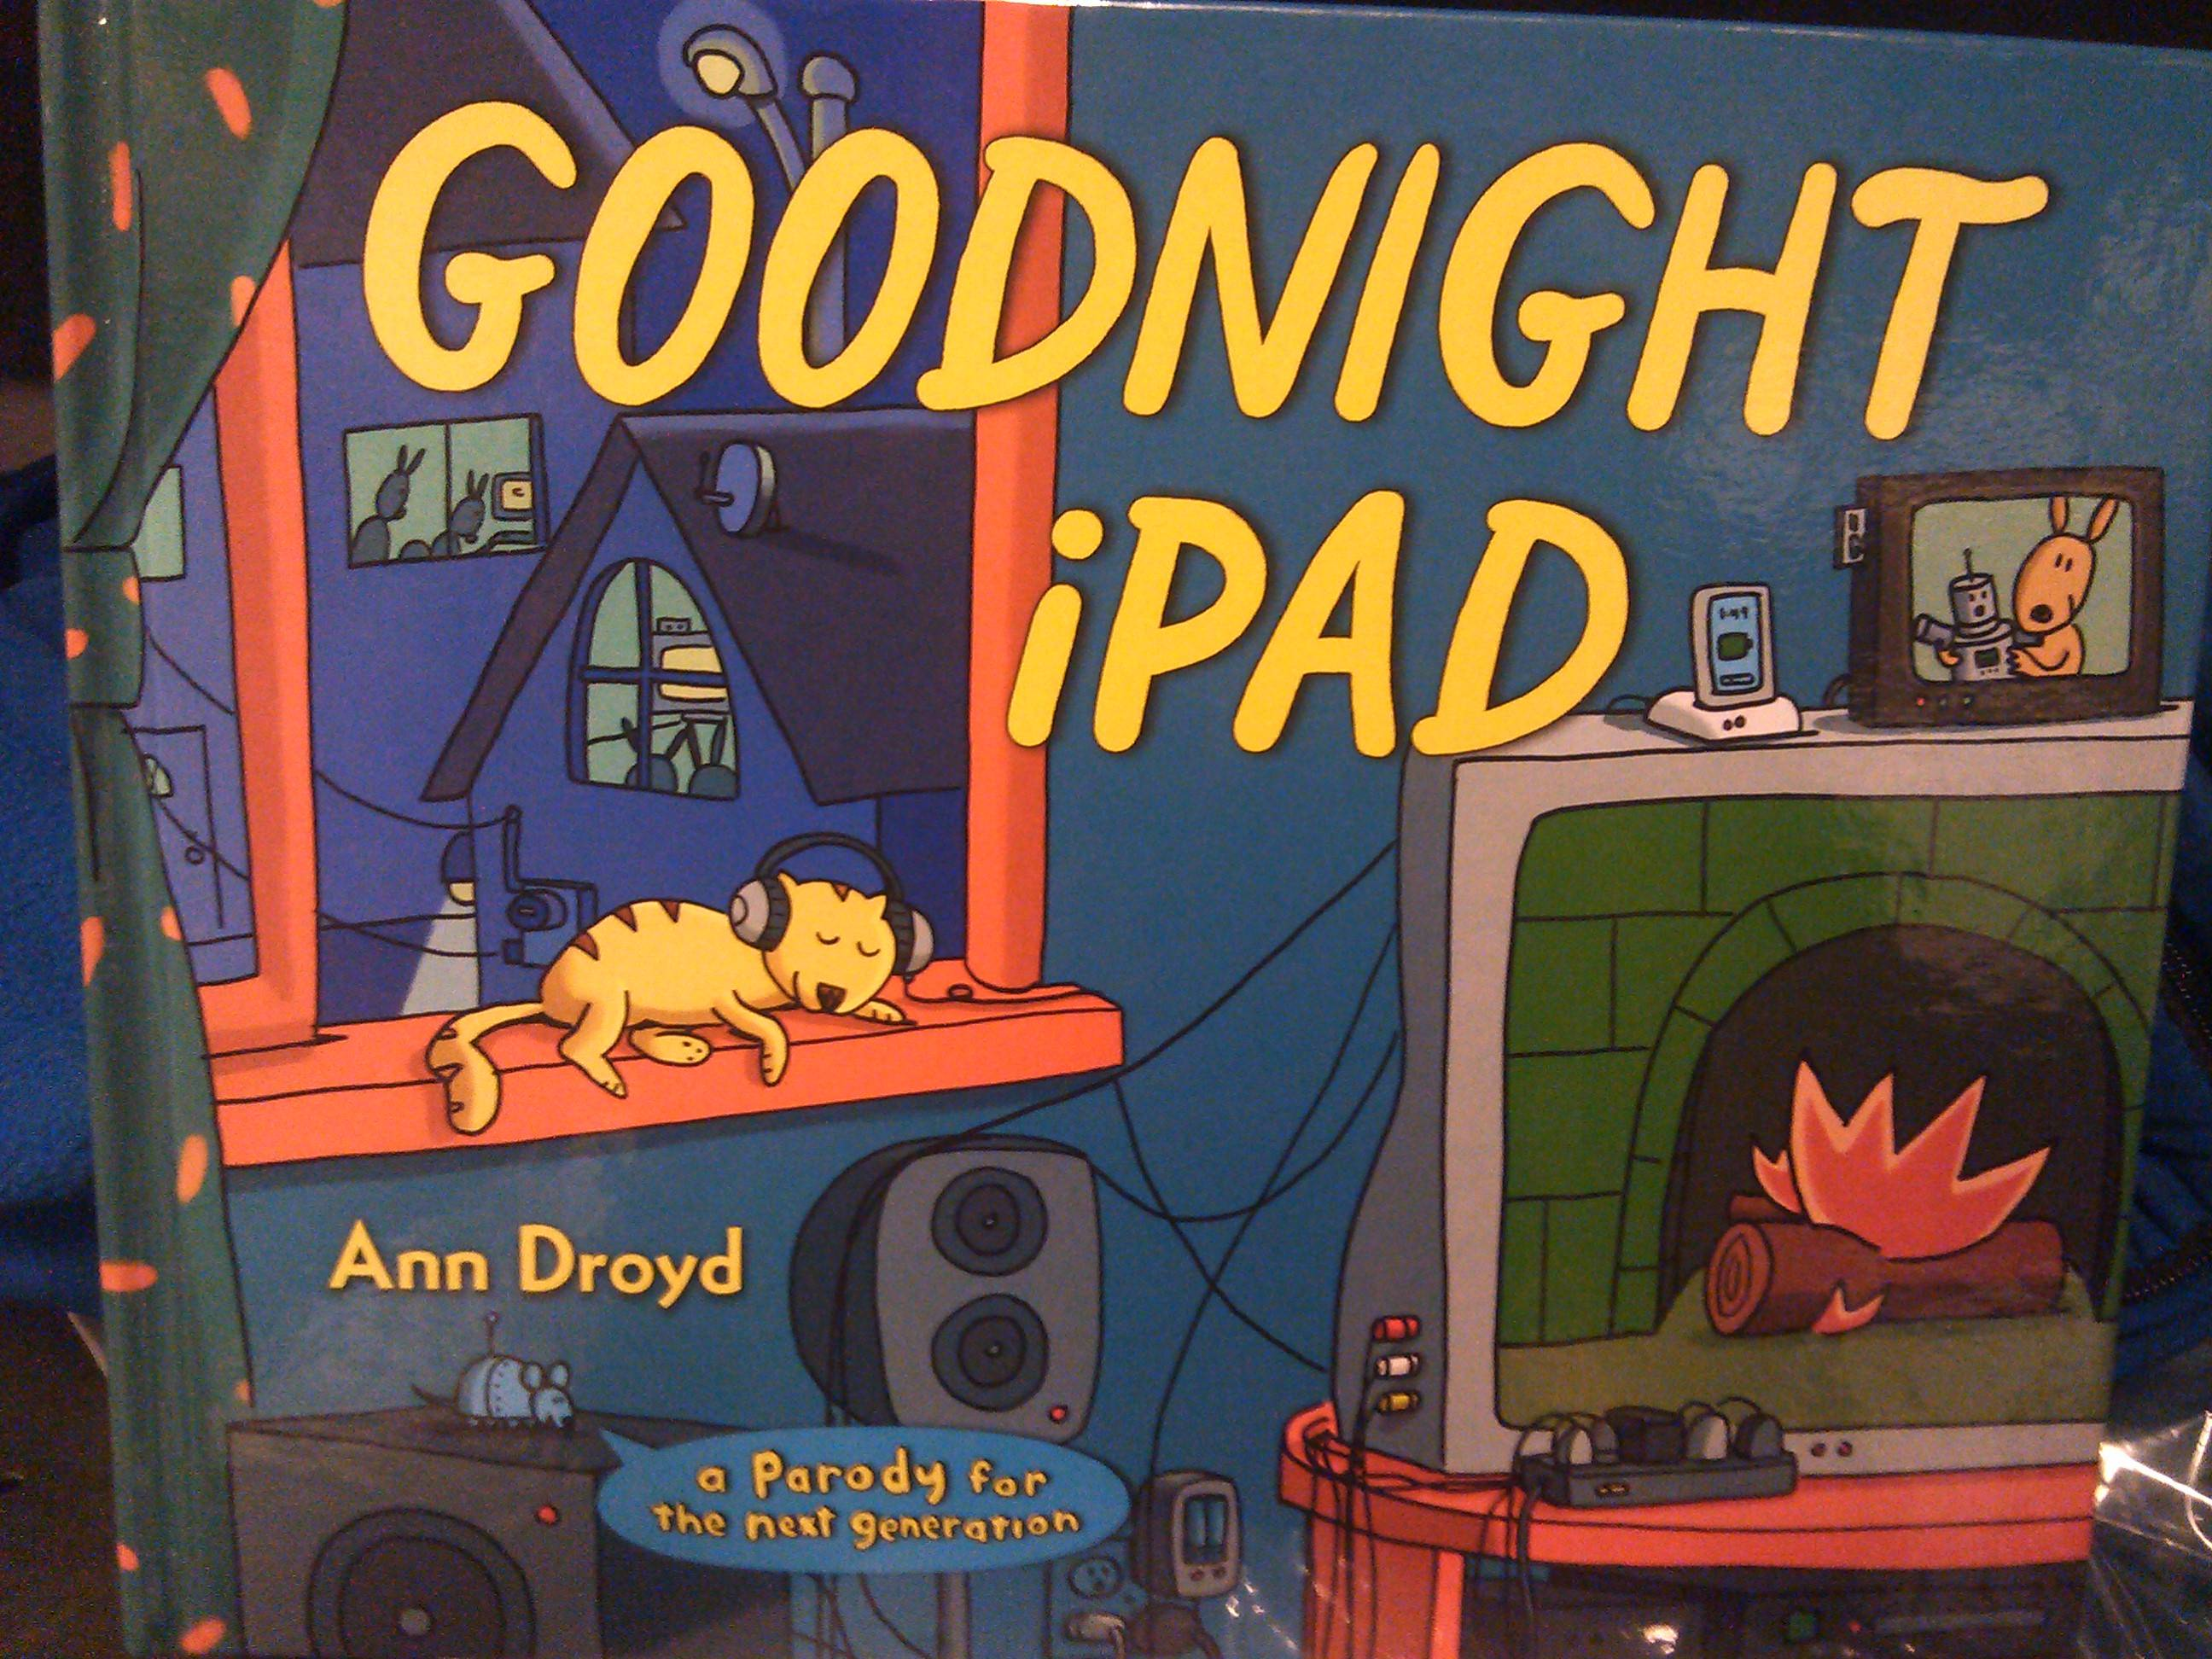 Goodnight ipad written by WAIT! Who?!